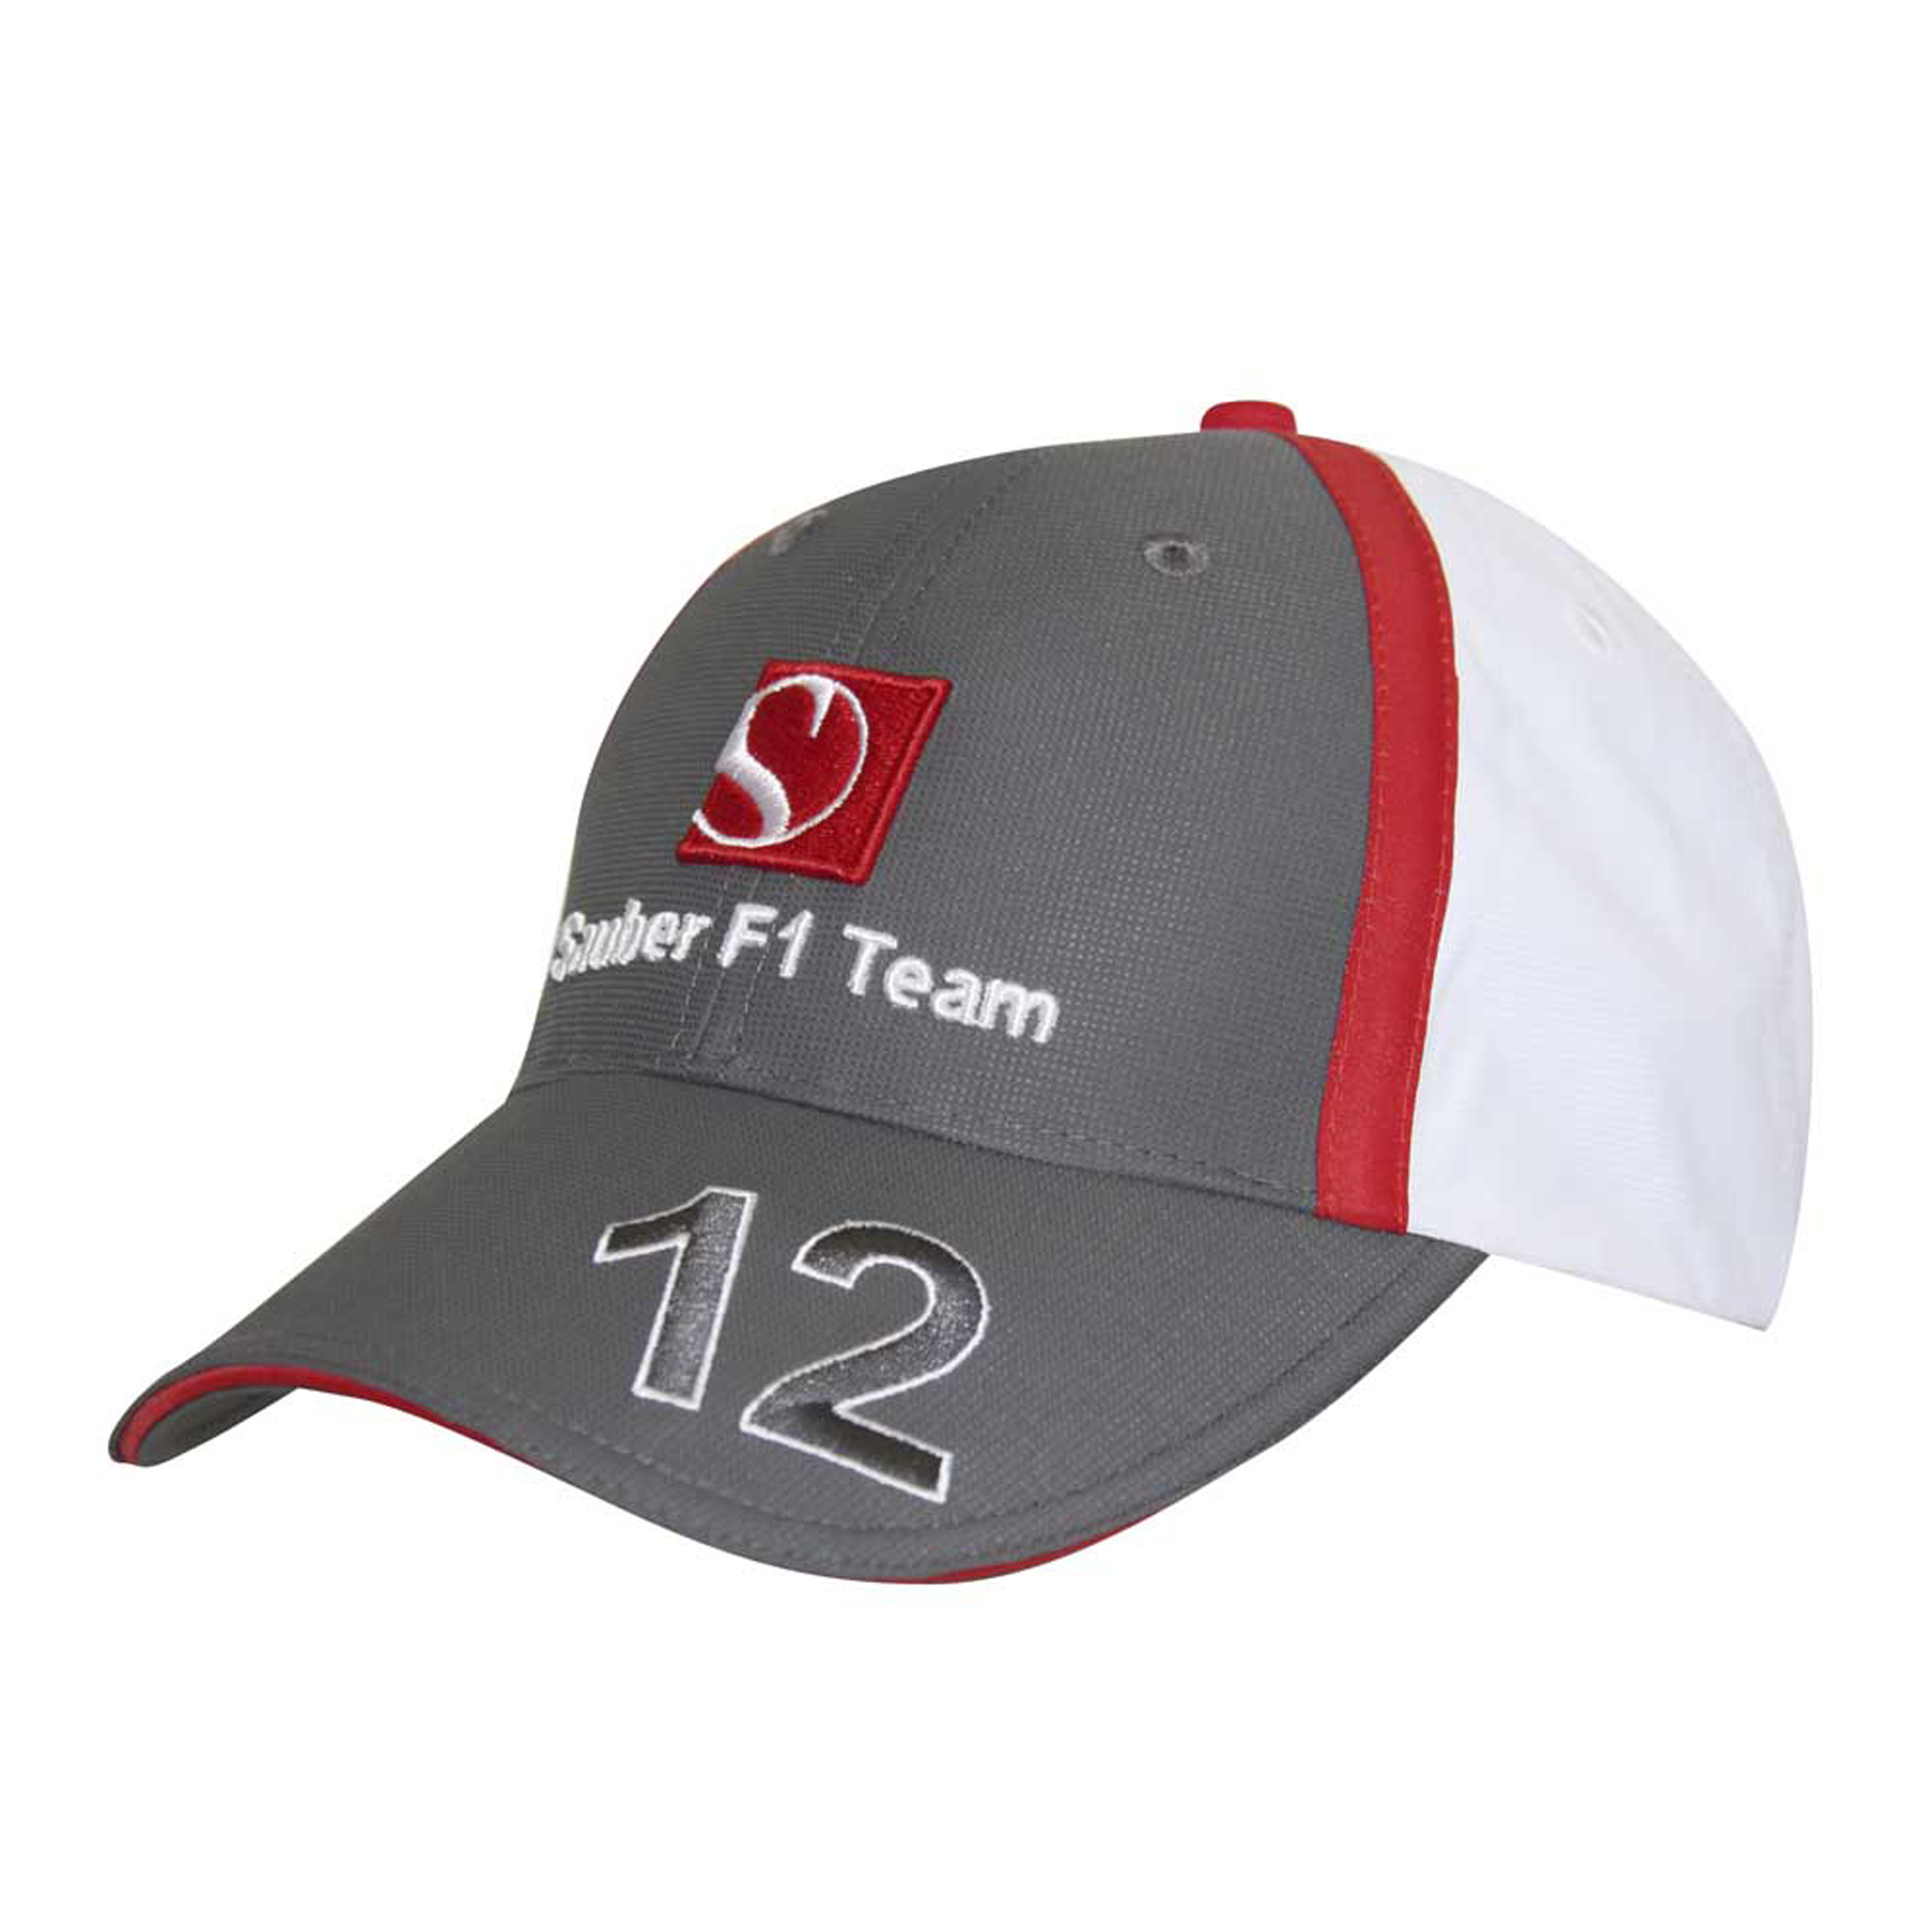 Sauber F1 Team 2013 Esteban Driver Cap